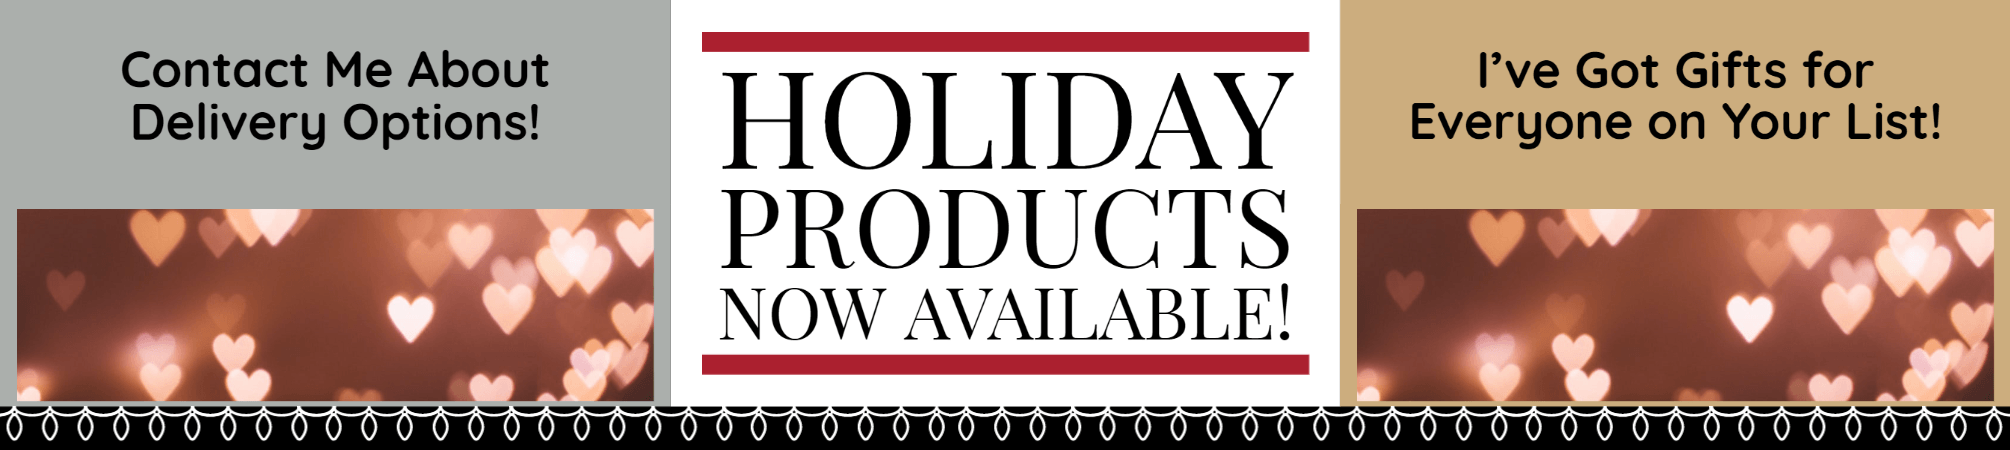 InvoiceBanner-HolidayProducts.png